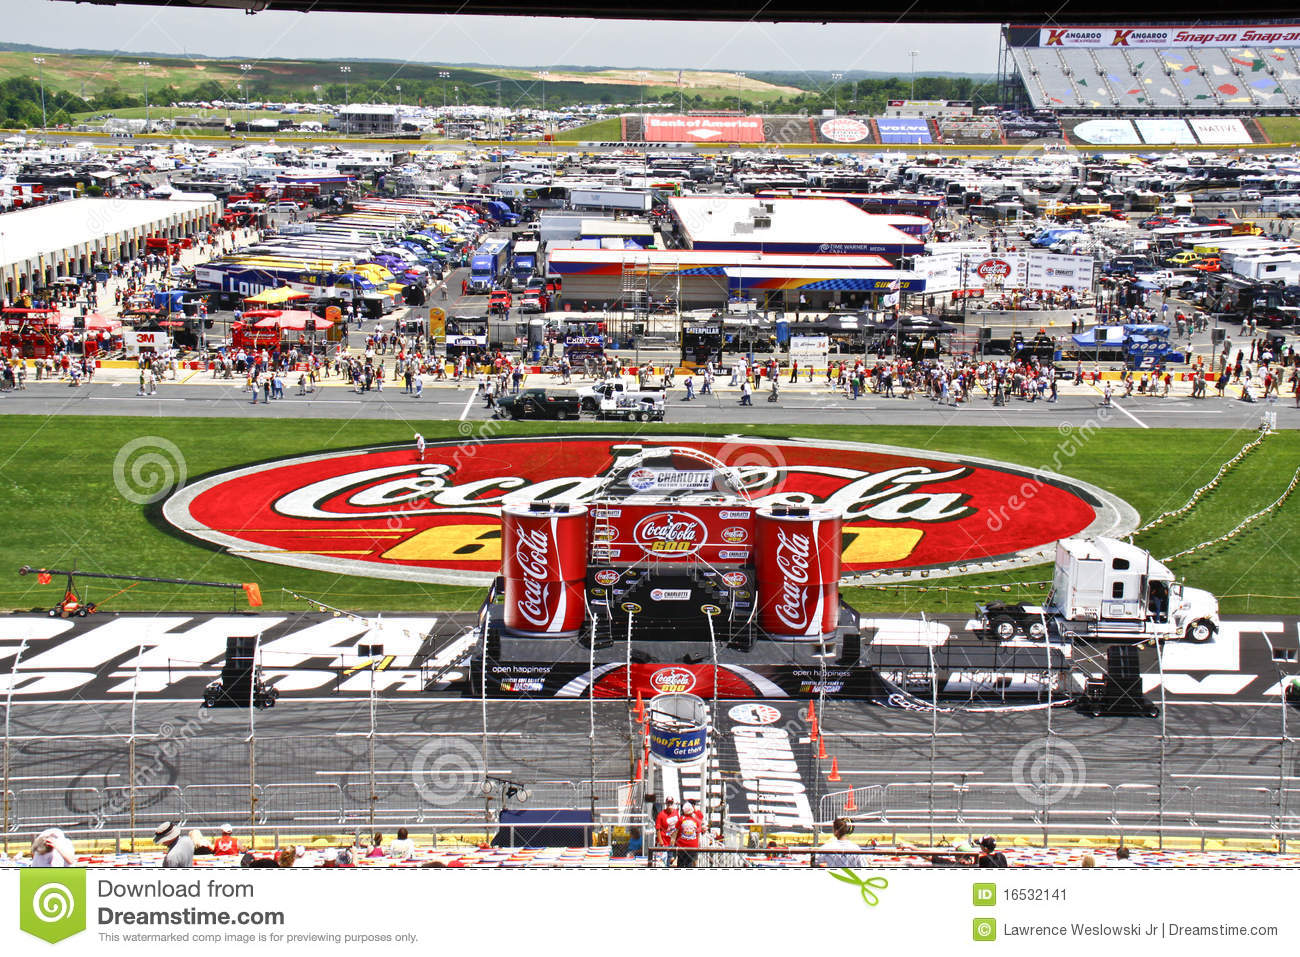 NASCAR - Setting the Stage for the Coca Cola 600